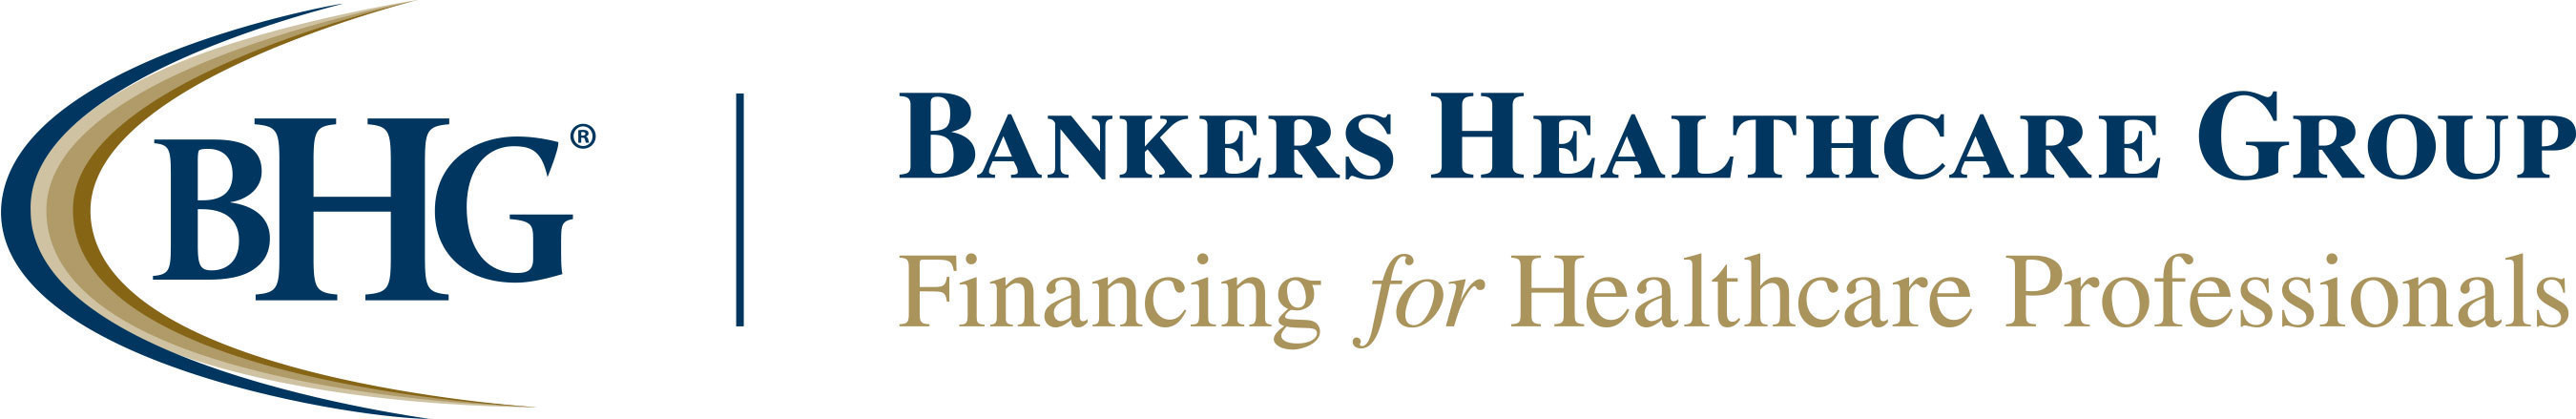 Since 2001, Bankers Healthcare Group has been committed to providing hassle-free financial solutions to ...